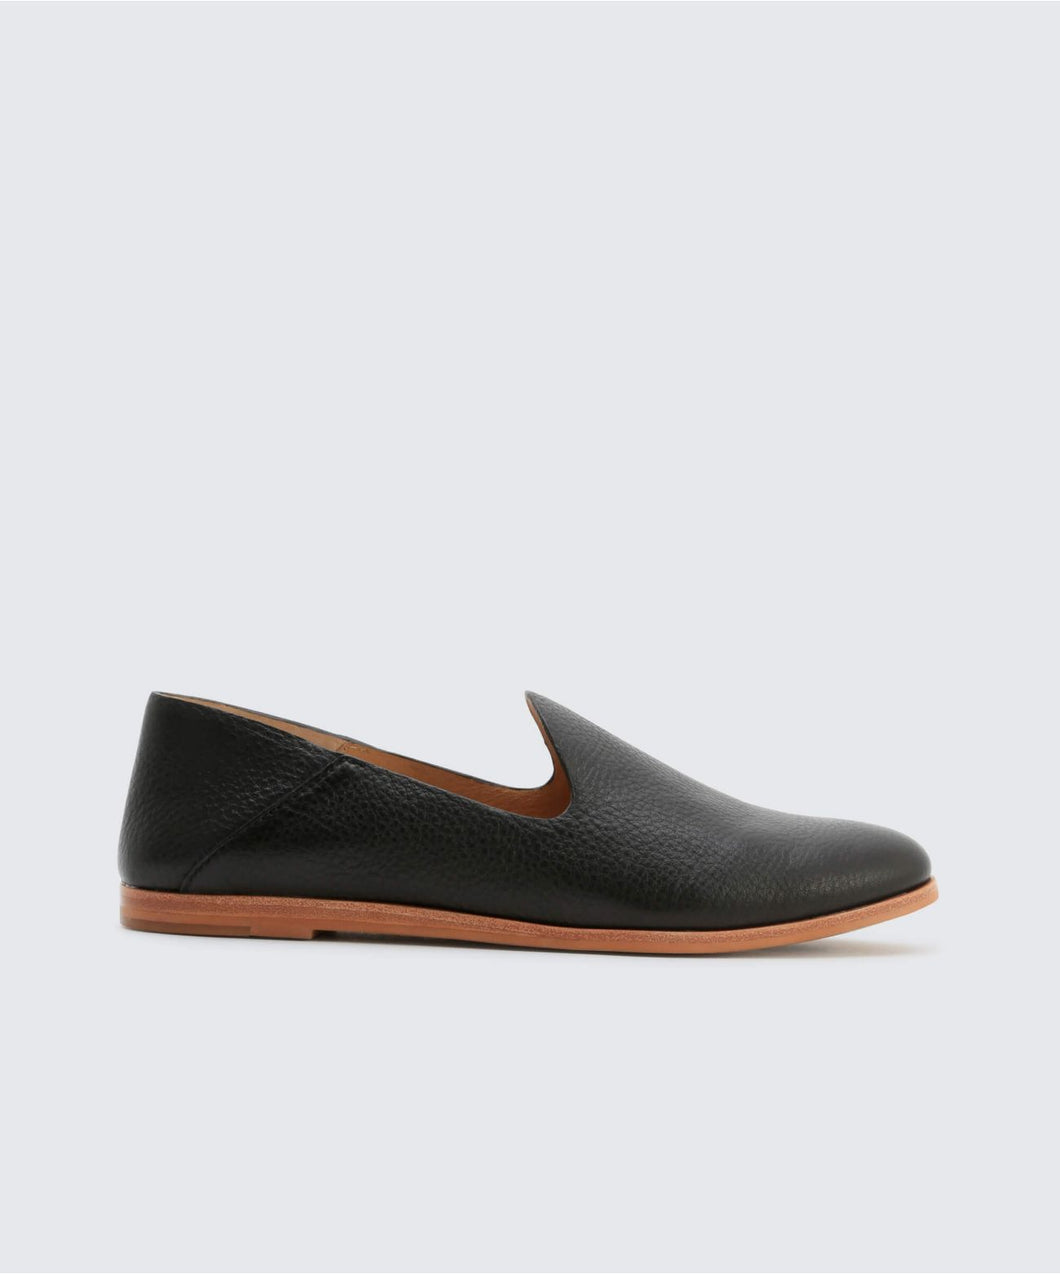 AZUR FLATS IN BLACK -   Dolce Vita